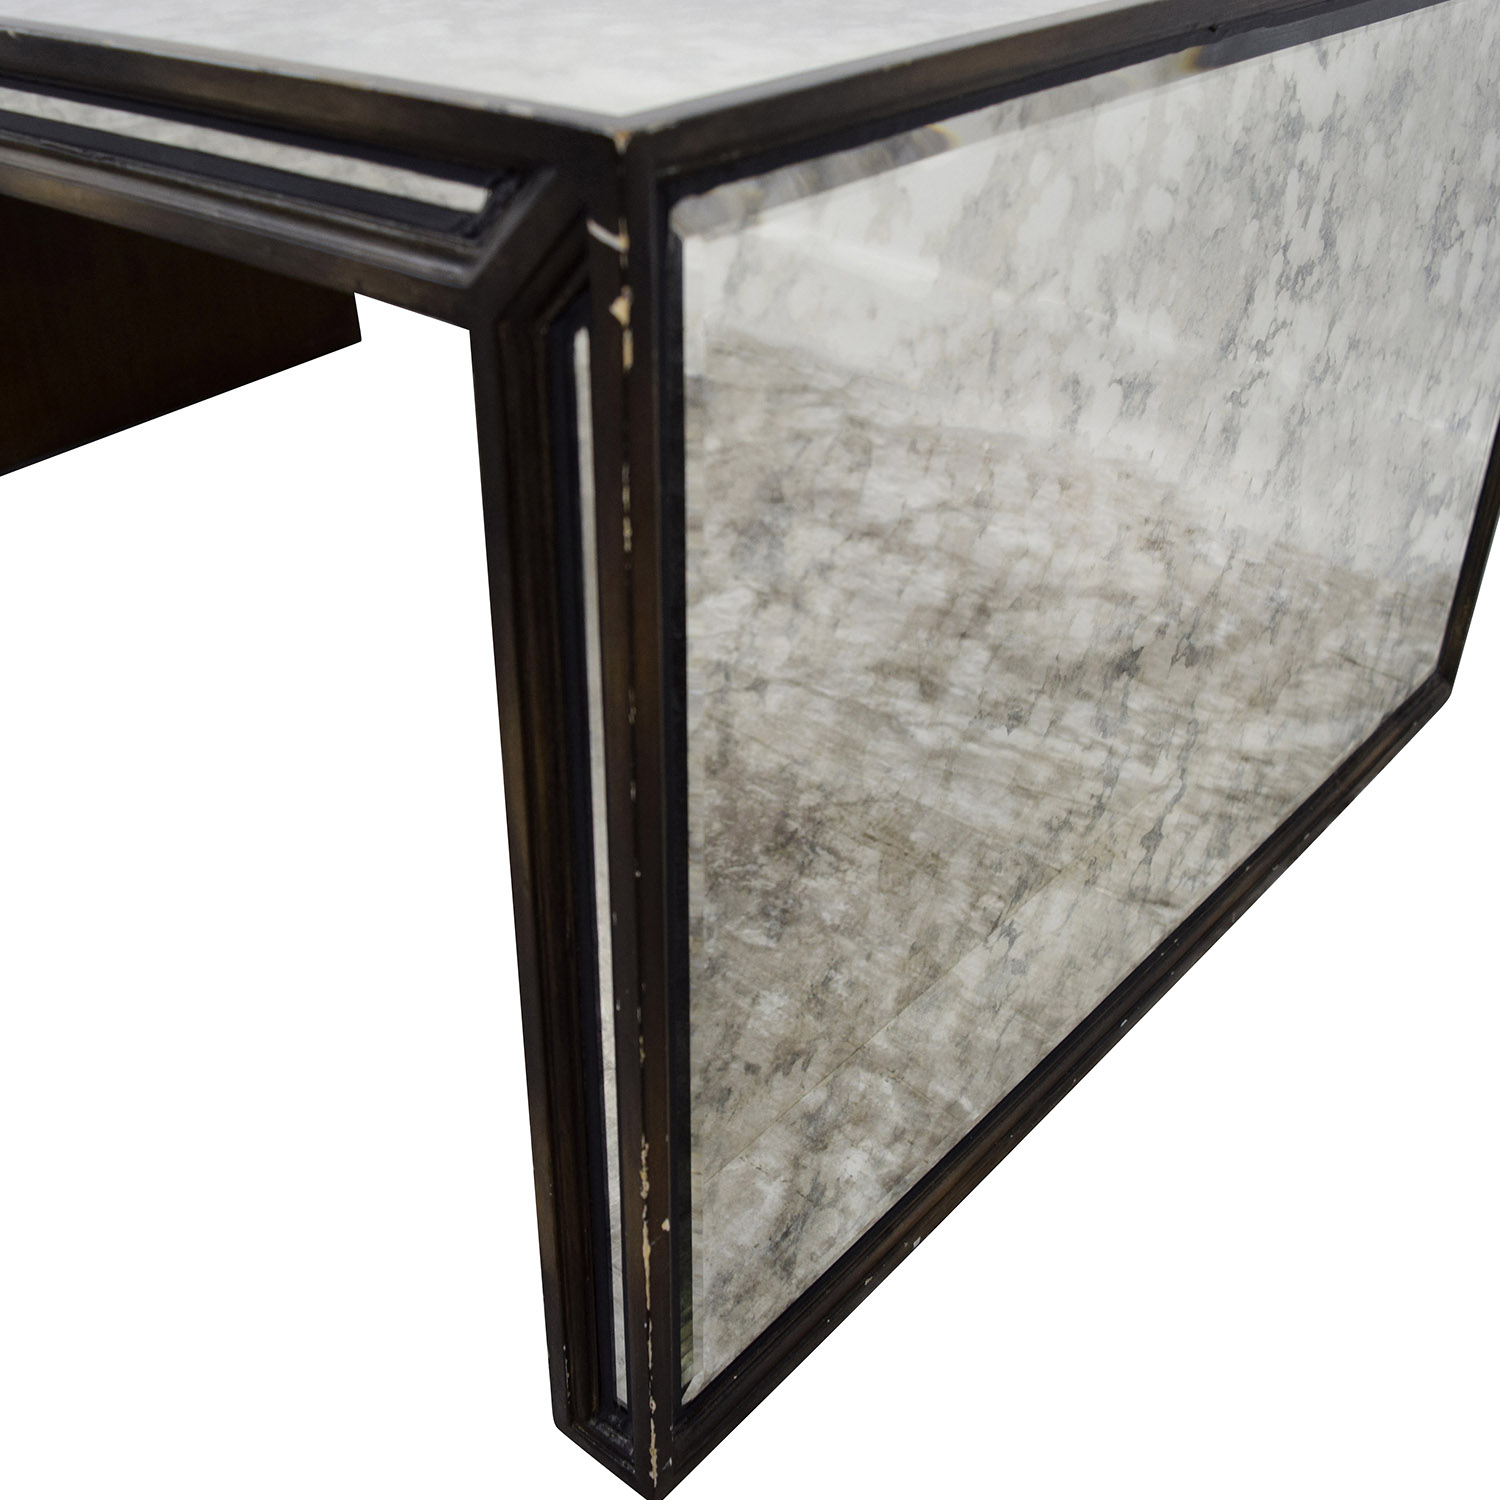 OFF Arhaus Furniture Arhaus Mirrored Coffee Table Tables